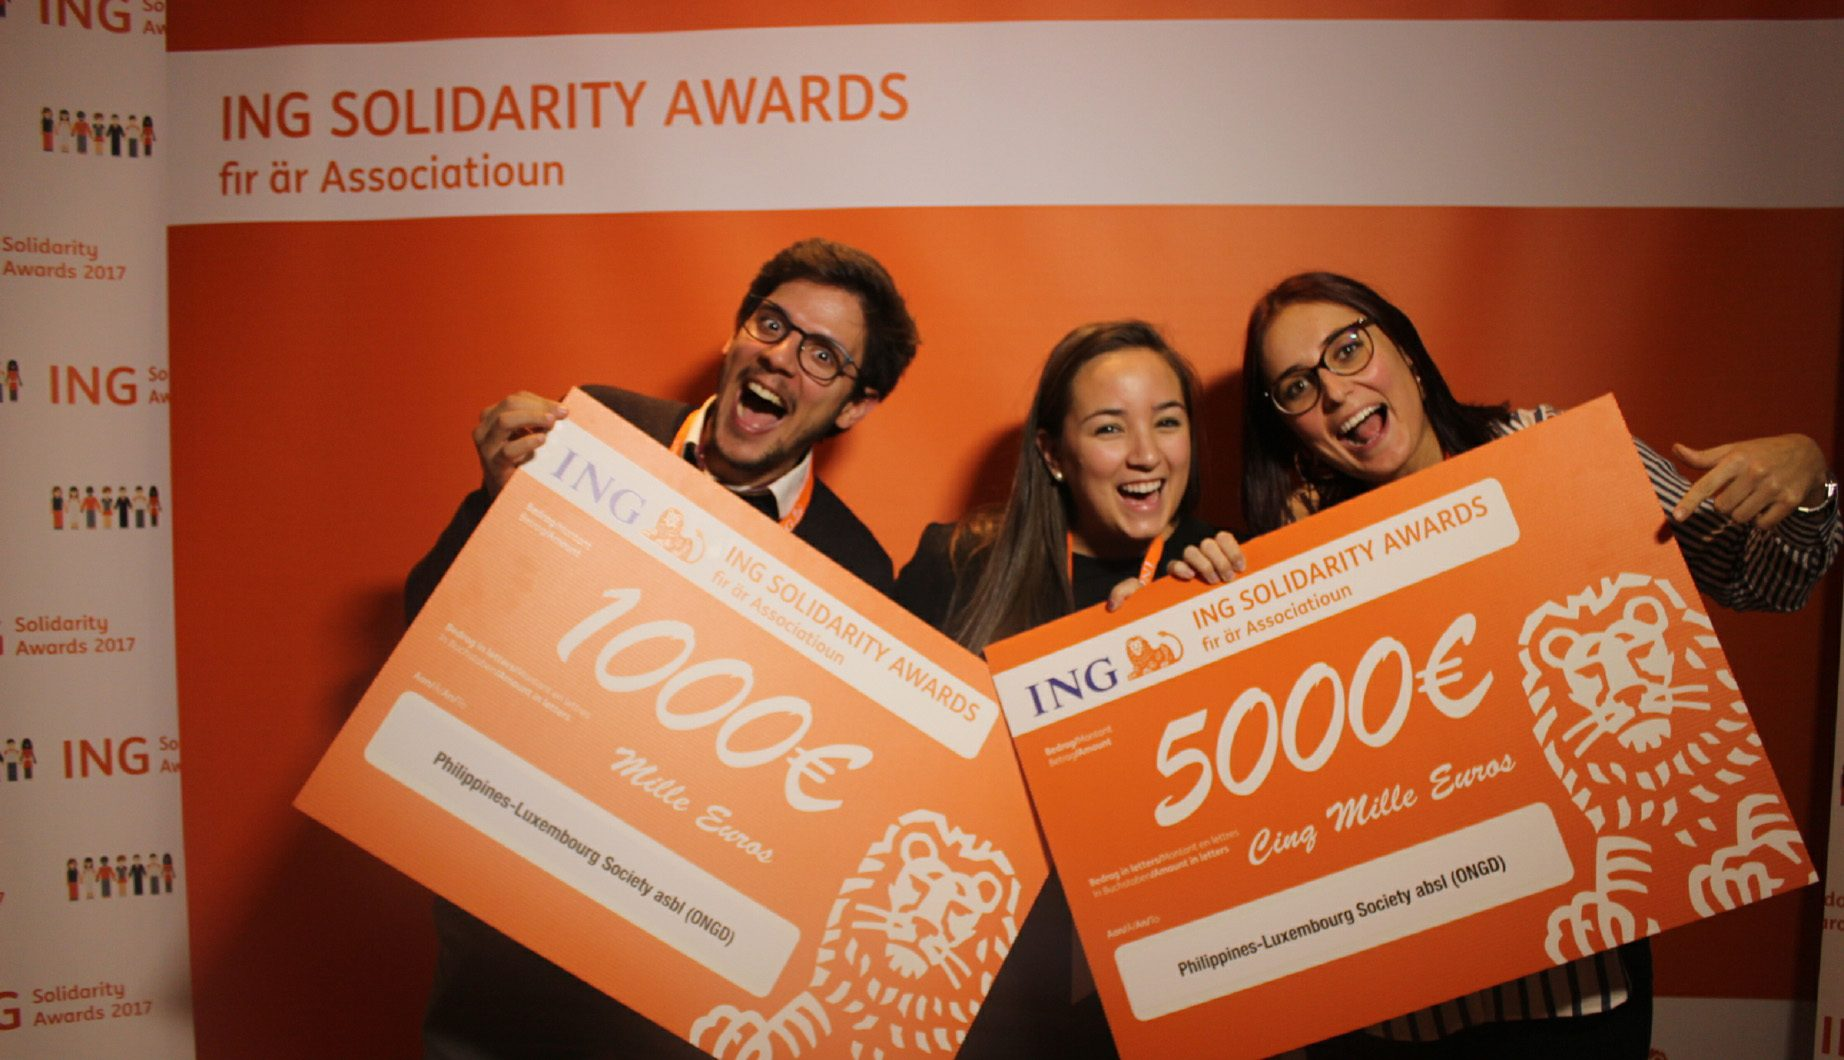 ING Solidarity Awards 2017